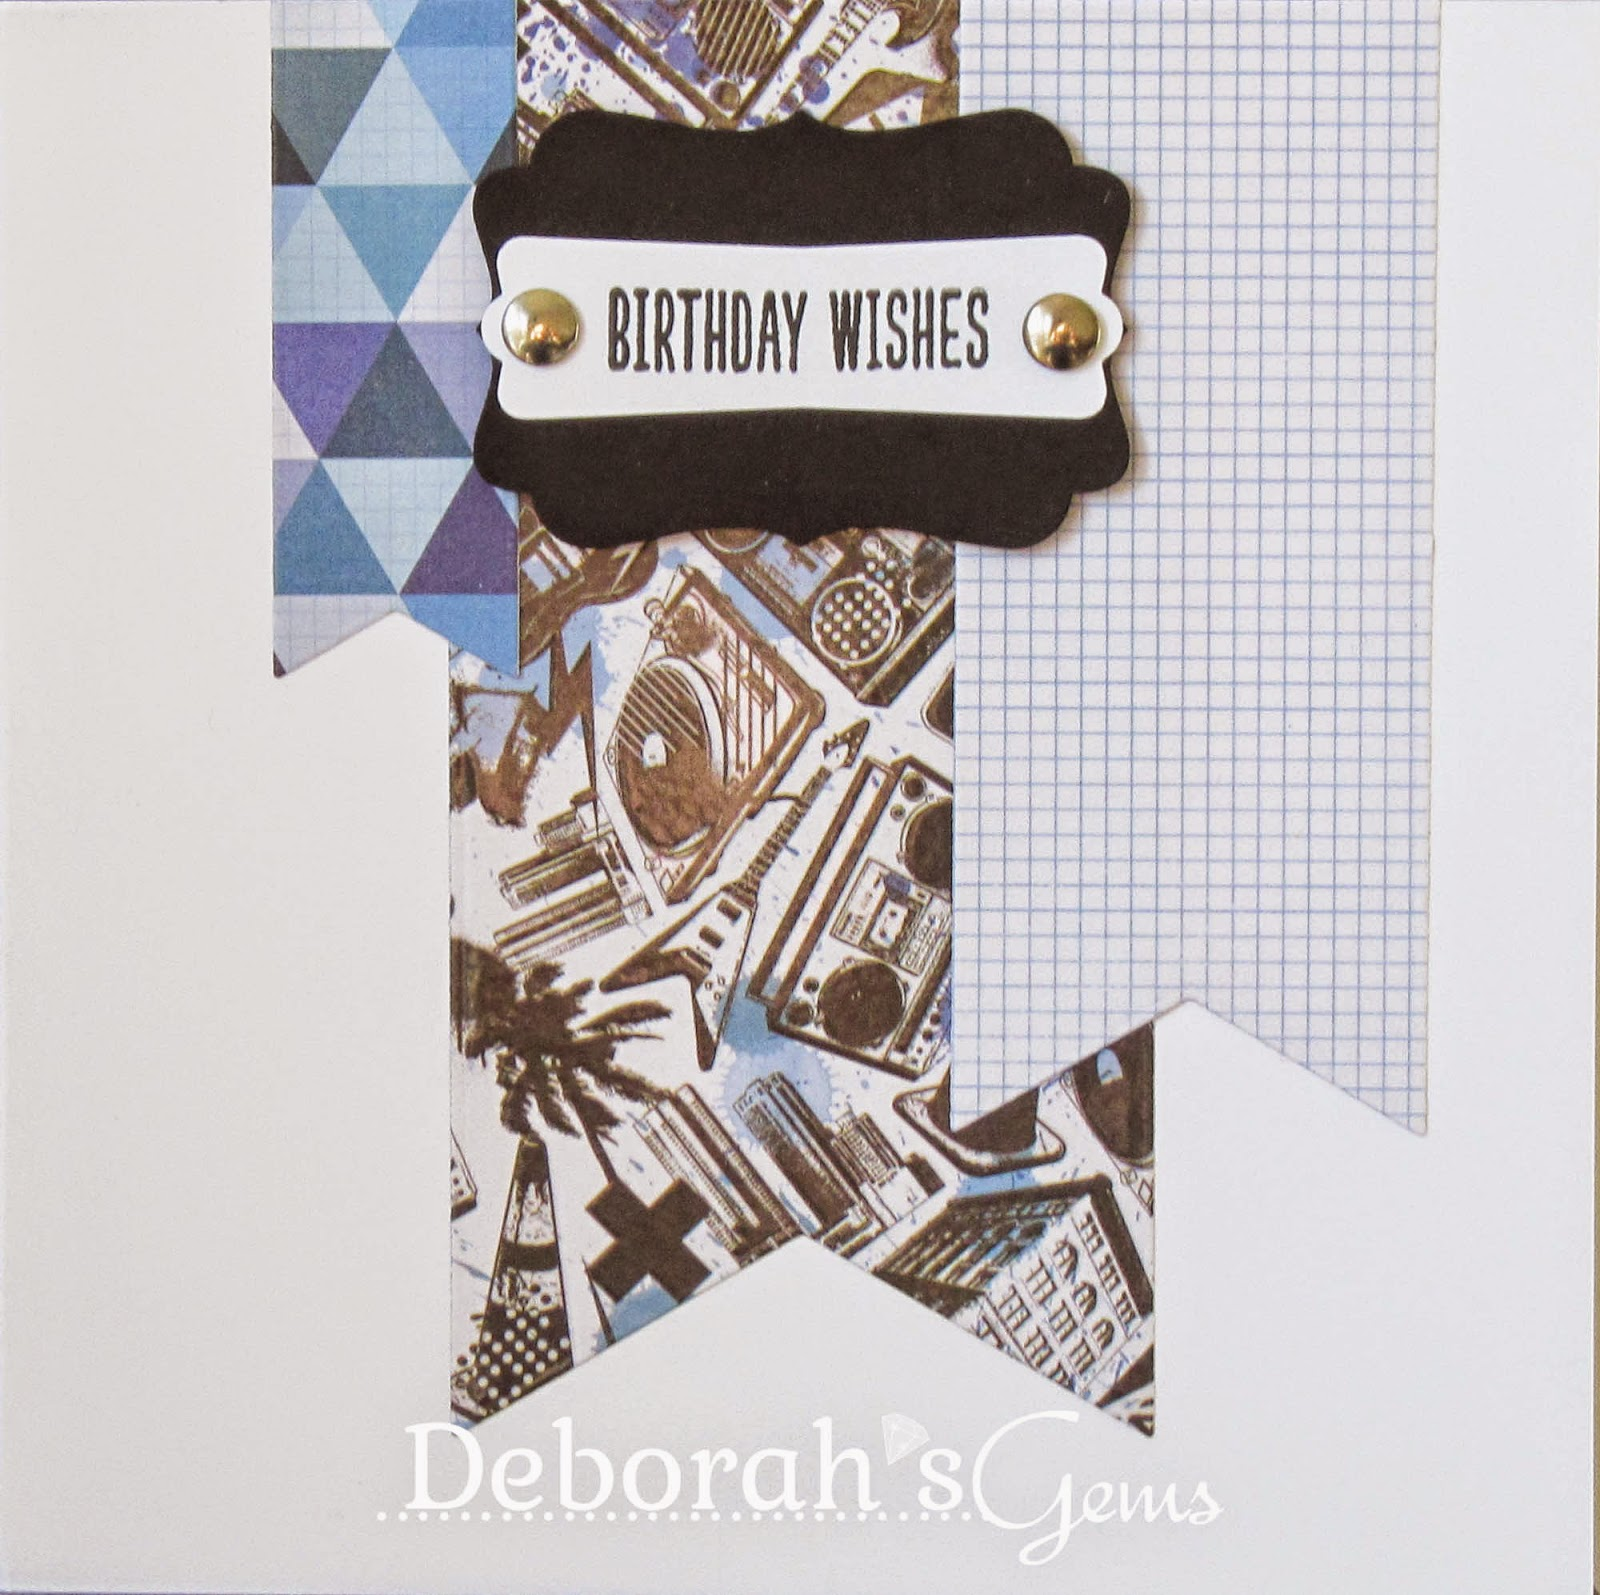 Birthday Blues - photo by Deborah Frings - Deborah's Gems